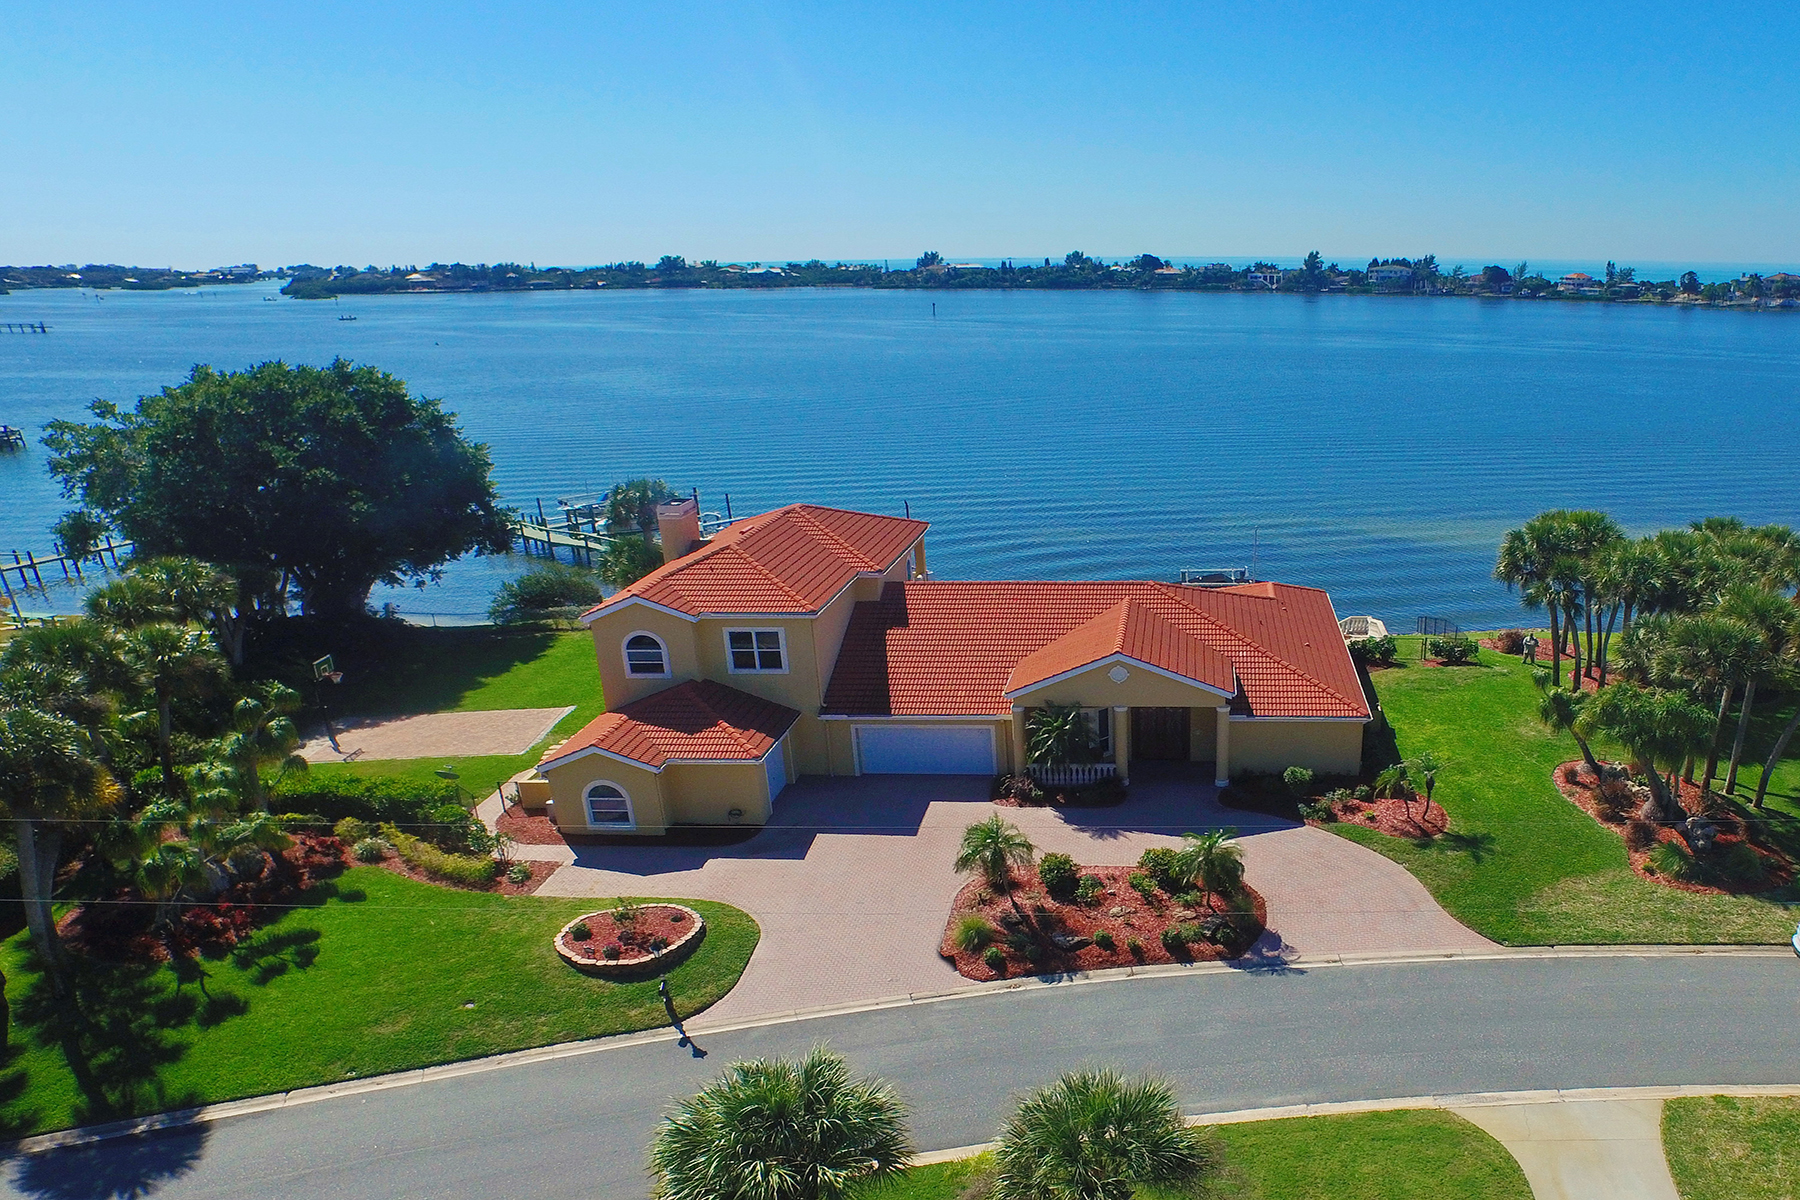 Single Family Home for Sale at SORRENTO SOUTH 443 Picasso Dr Nokomis, Florida 34275 United States